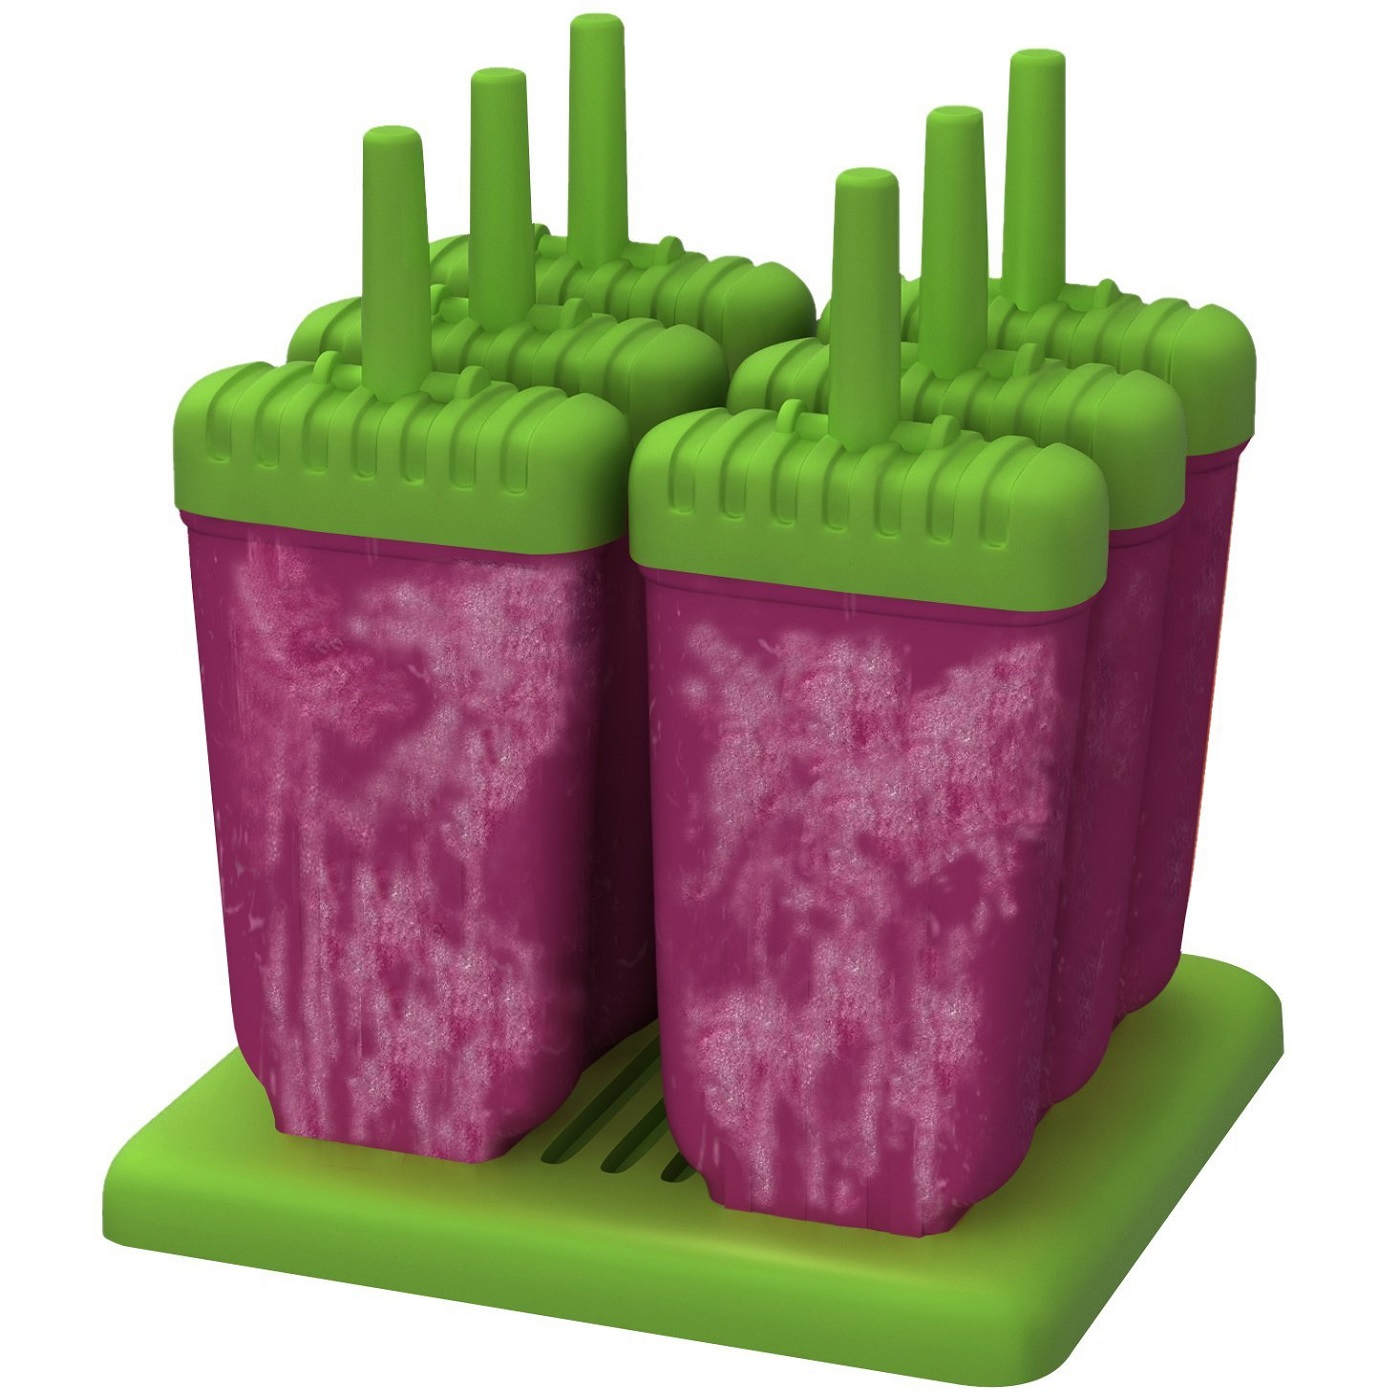 Ozera Reusable Popsicle Molds